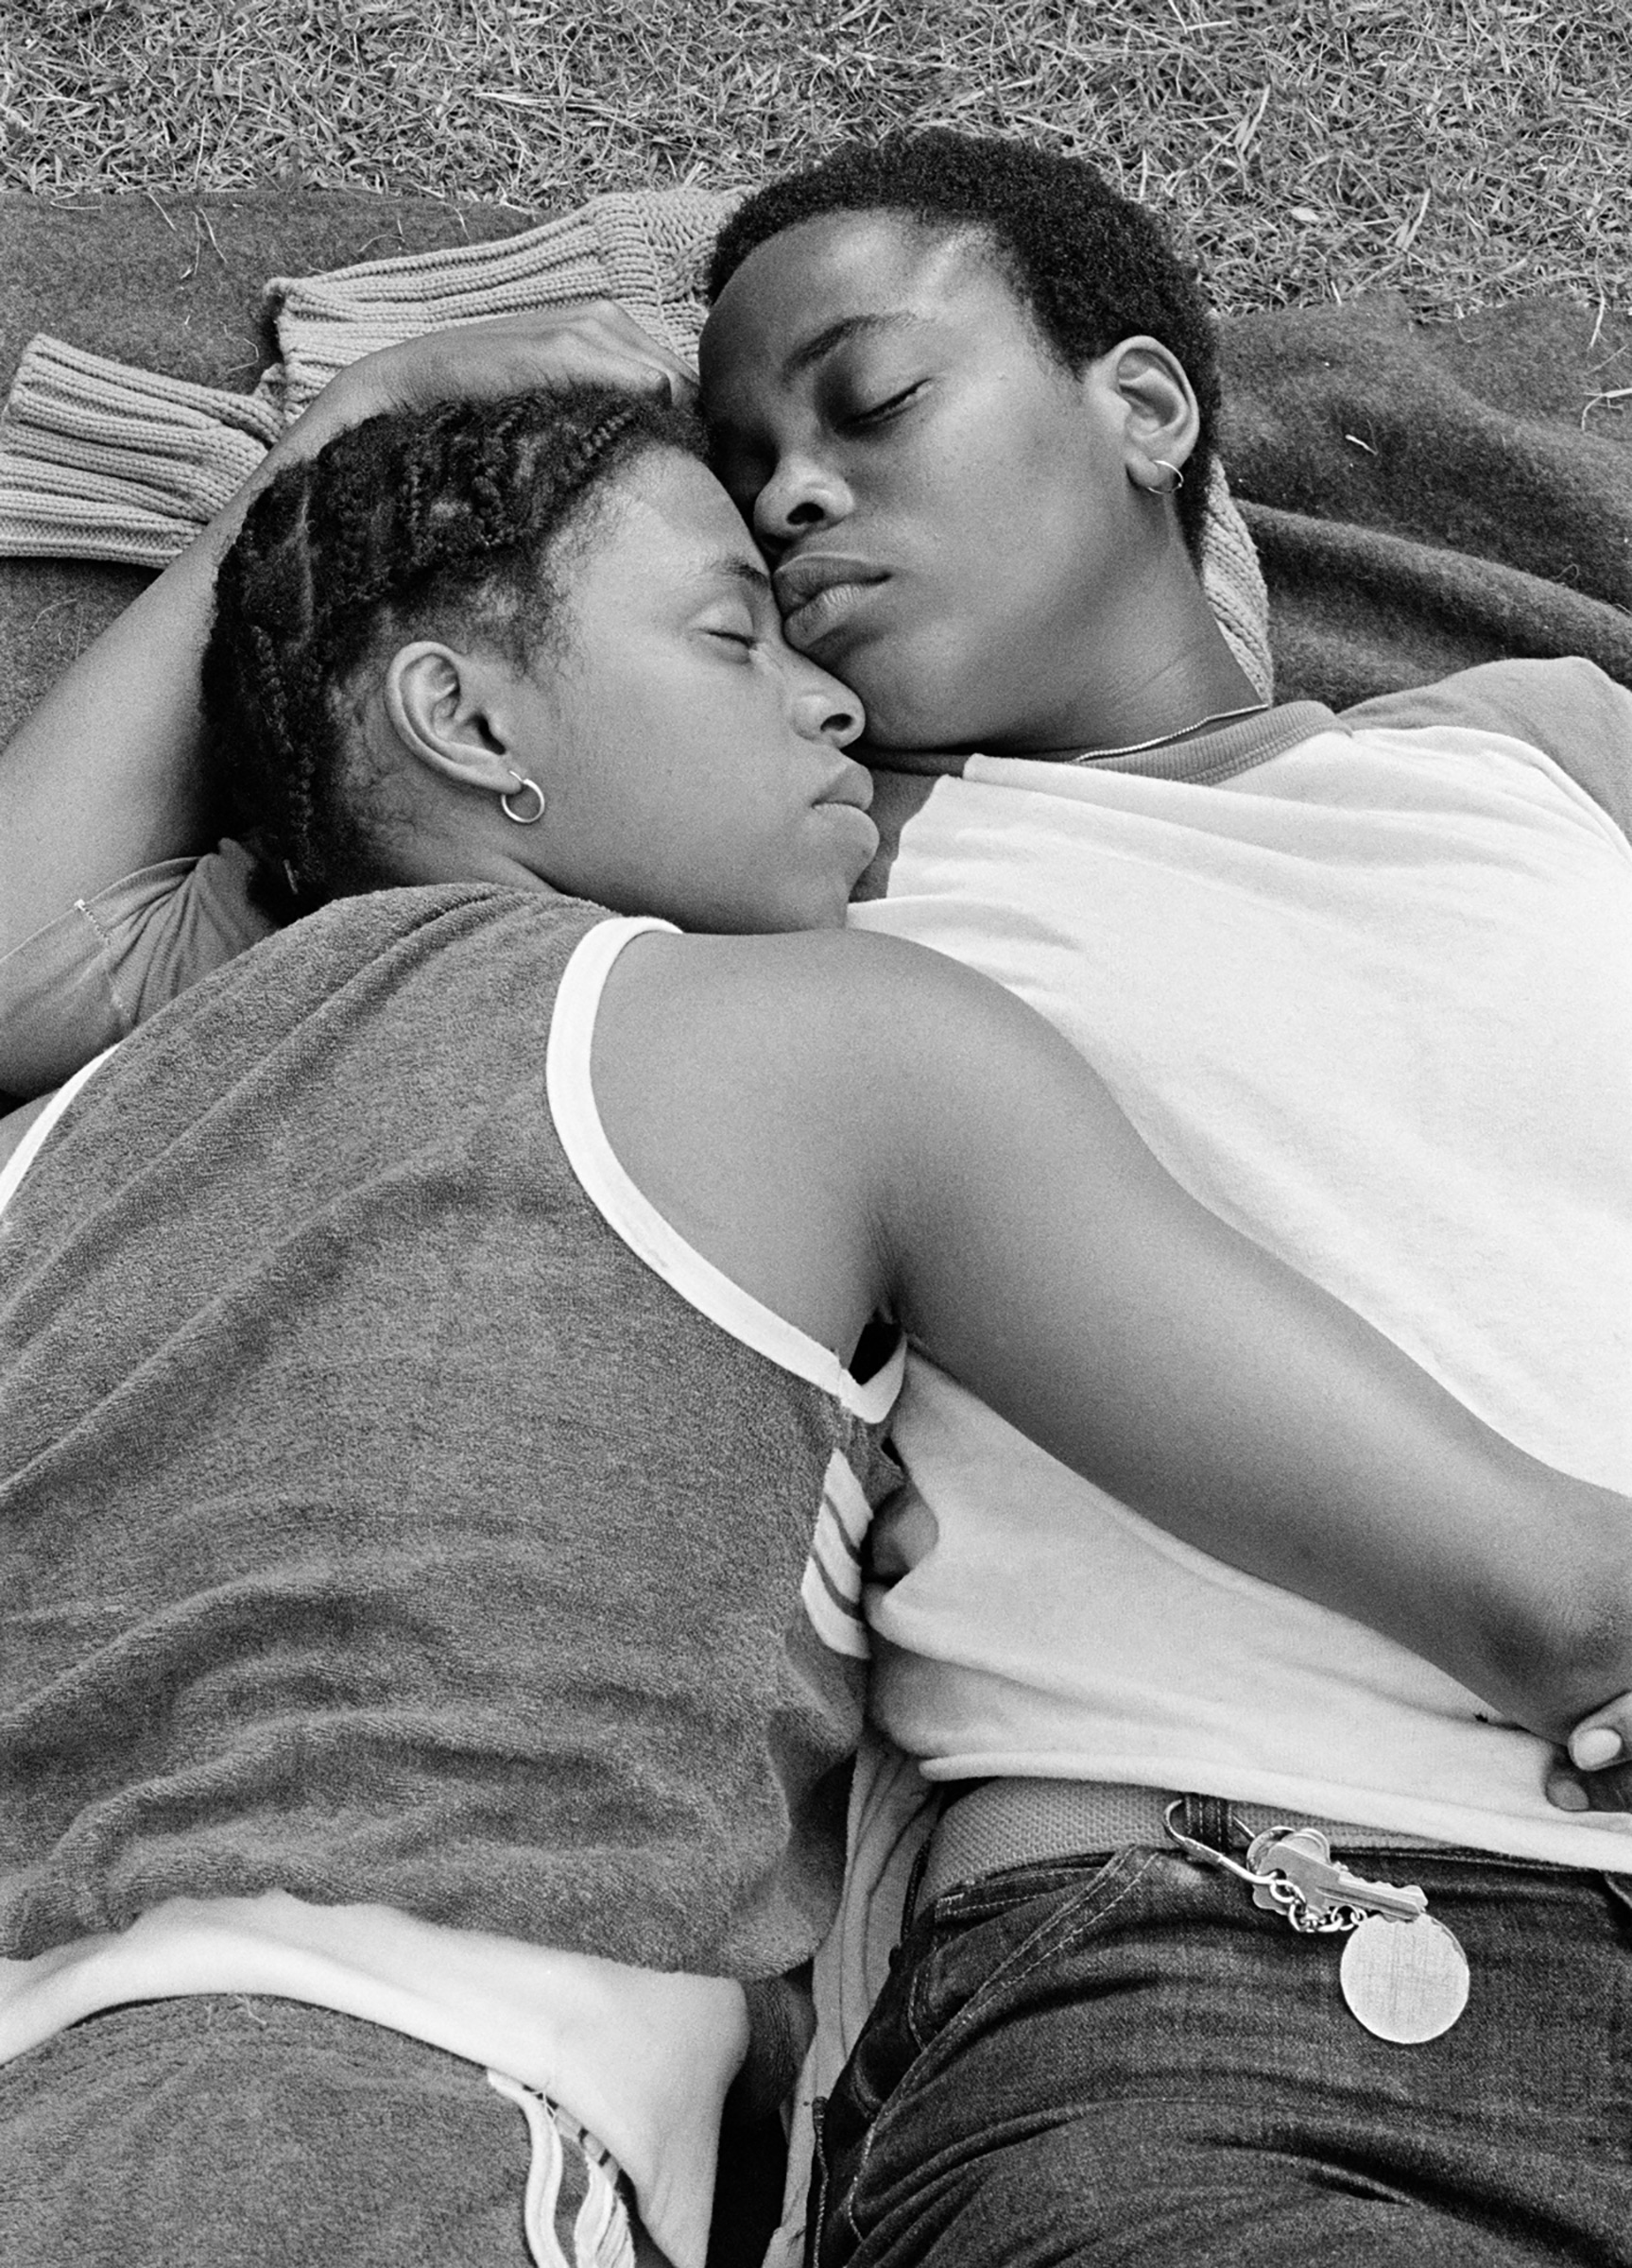 Priscilla and Regina. Brooklyn, New York. 1979